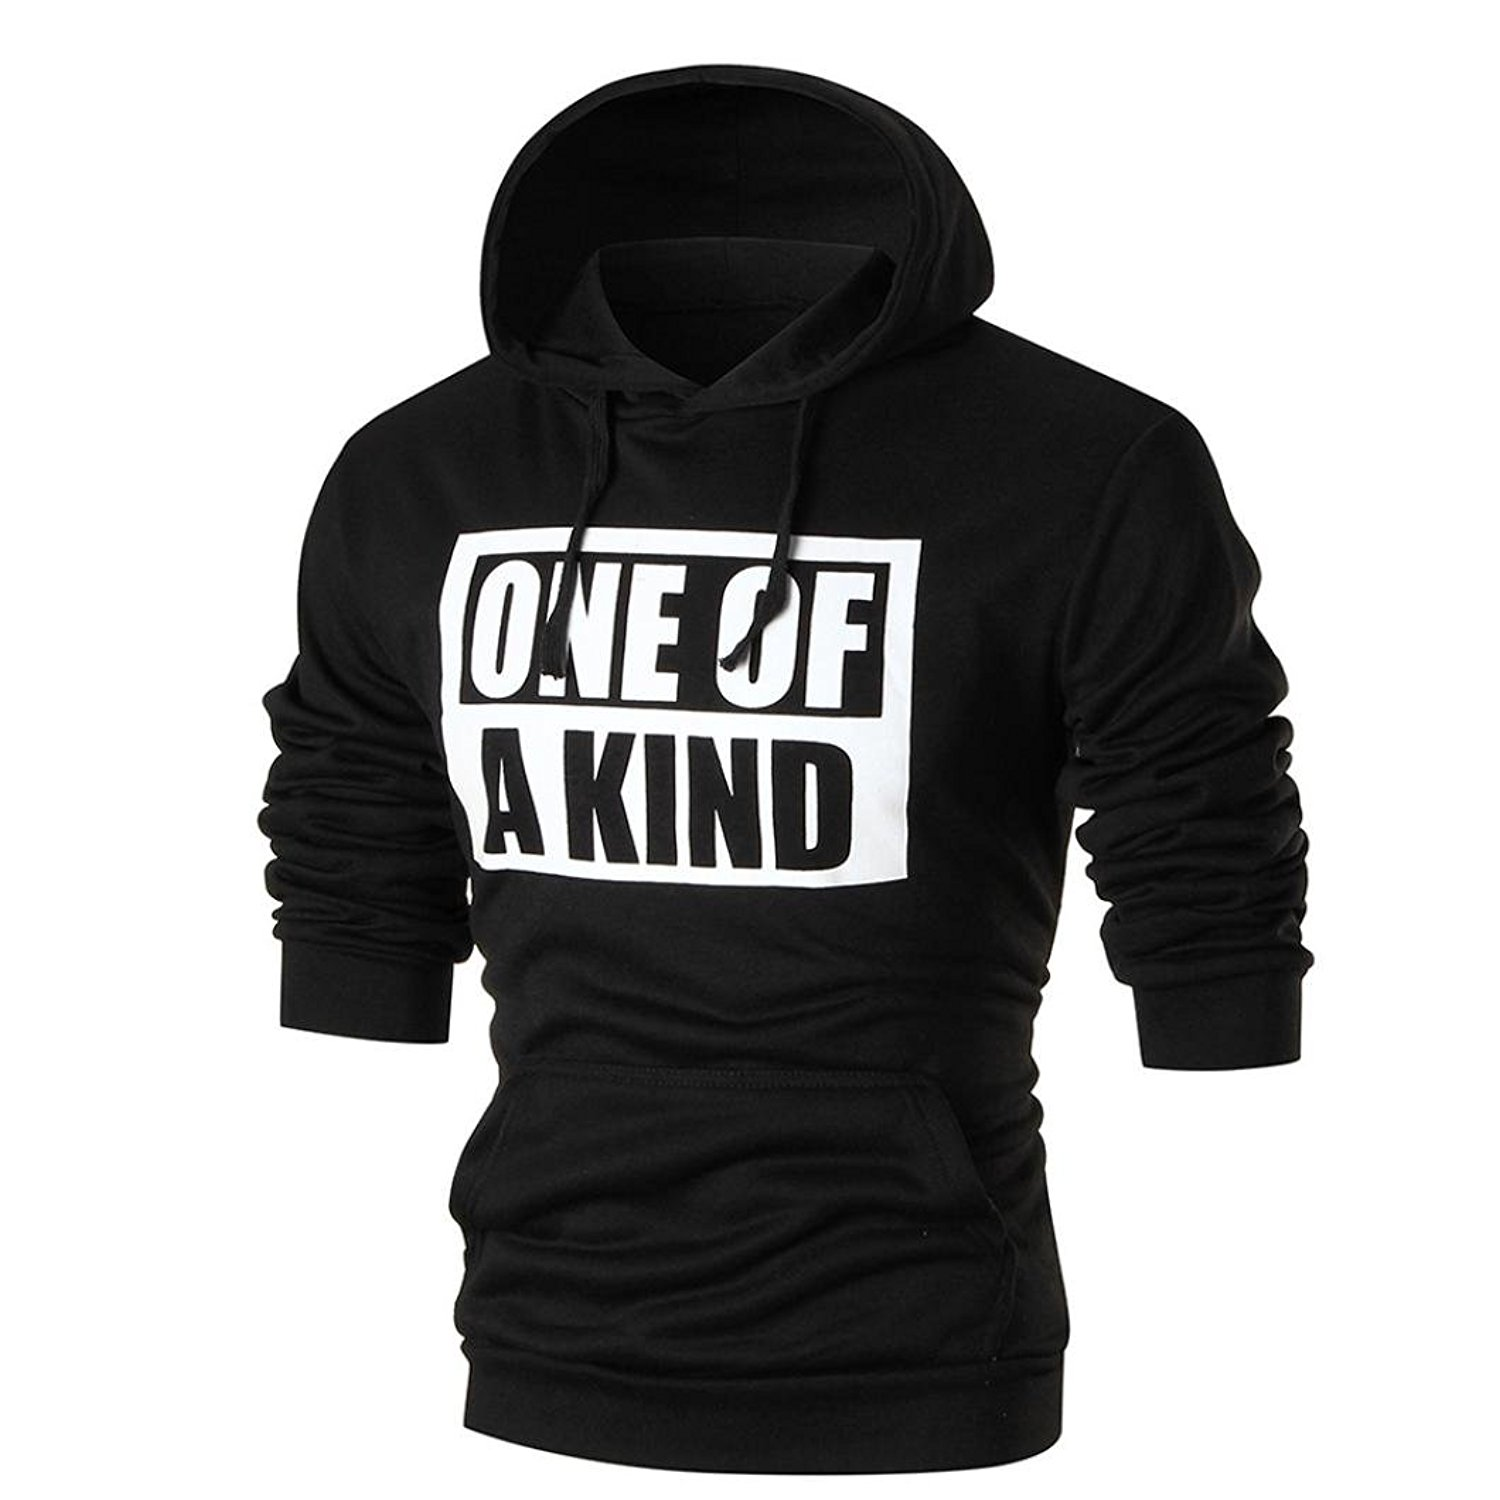 Bokeley Hot Sale,Men Hoodies, Casual Long Sleeve One of A Kind Letter Print Pullover Slim Fit Hooded Sweatshirt